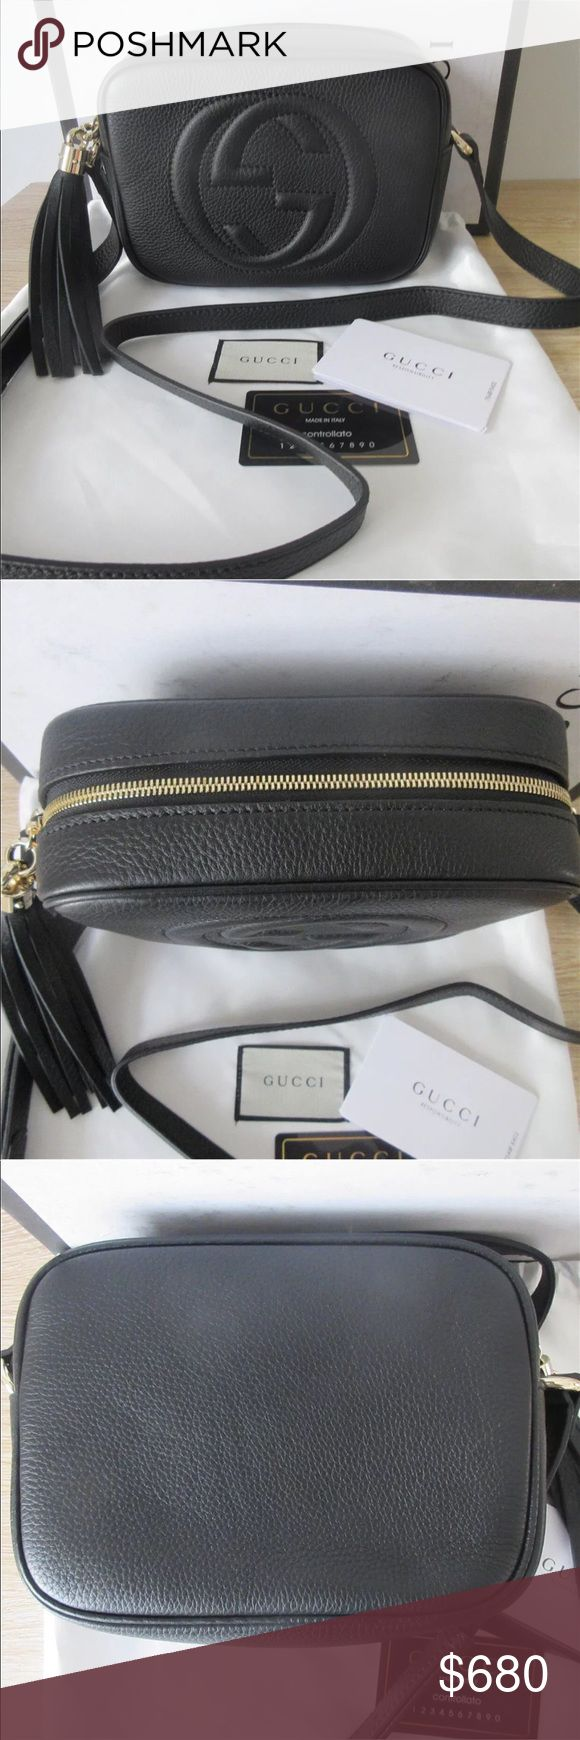 Gucci Soho Disco Black Crossbody Bag 100% Authentic 🛍 We are a very negotiable service 🛍 We provide overnight shipping and express shipping 🛍 Our transactions are made through third party applications 🛍 If you are interested in buying this product please contact us via 646-431-6521 🛍 Gucci Bags Crossbody Bags